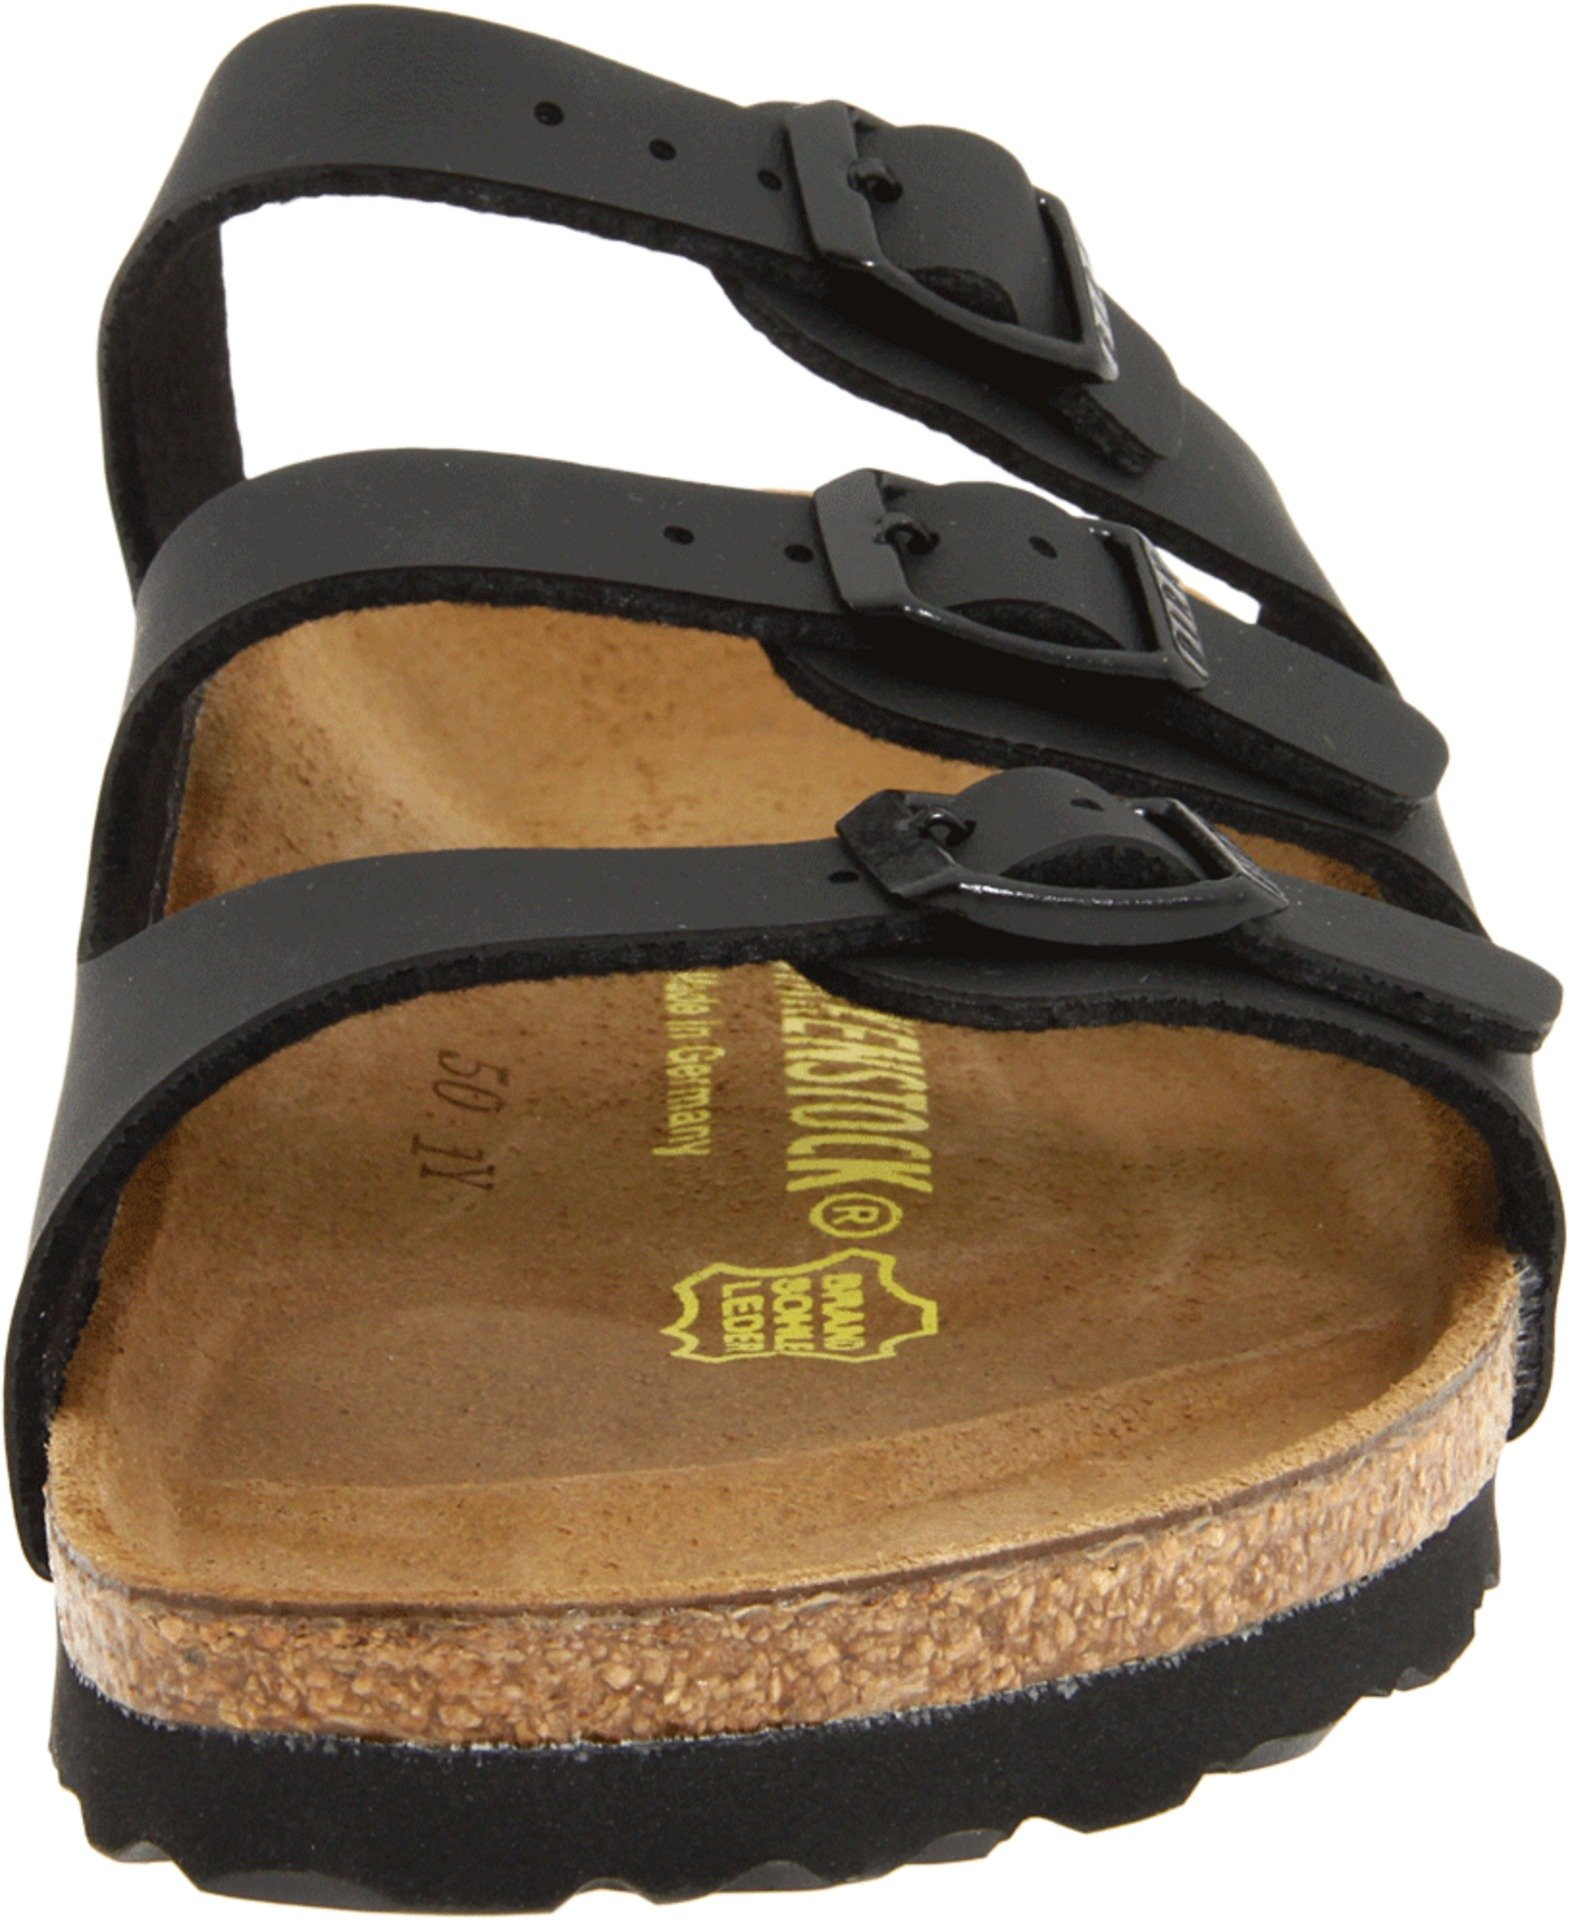 Birkenstock Women's Florida Sandals,Black,38 N EU / 7-7.5 AA(N) US by Birkenstock (Image #4)